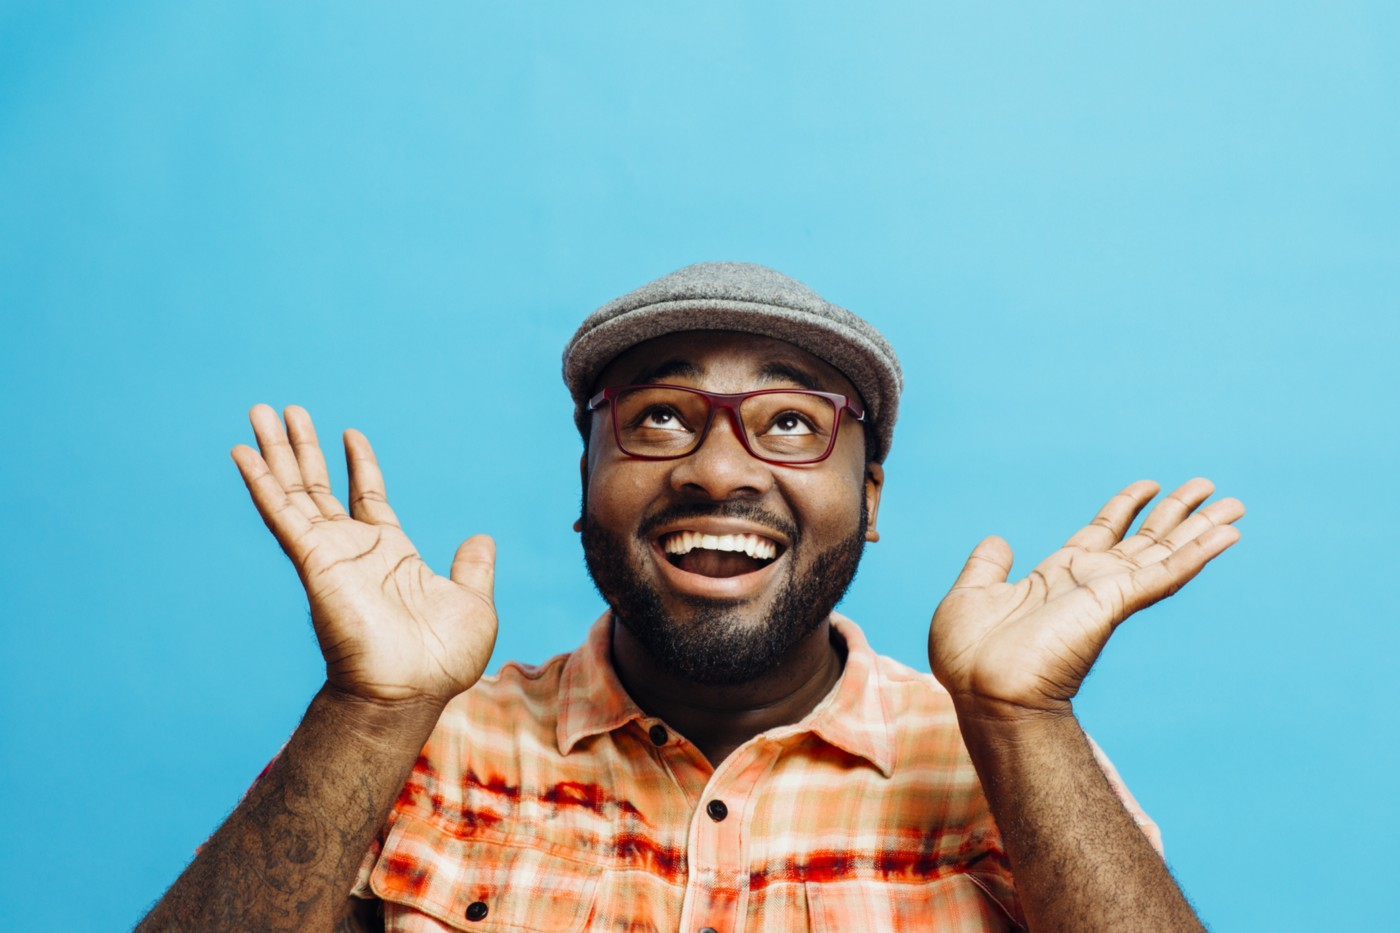 A photo of a man smiling with his eyes looking up towards the sky, jazz hands and all.